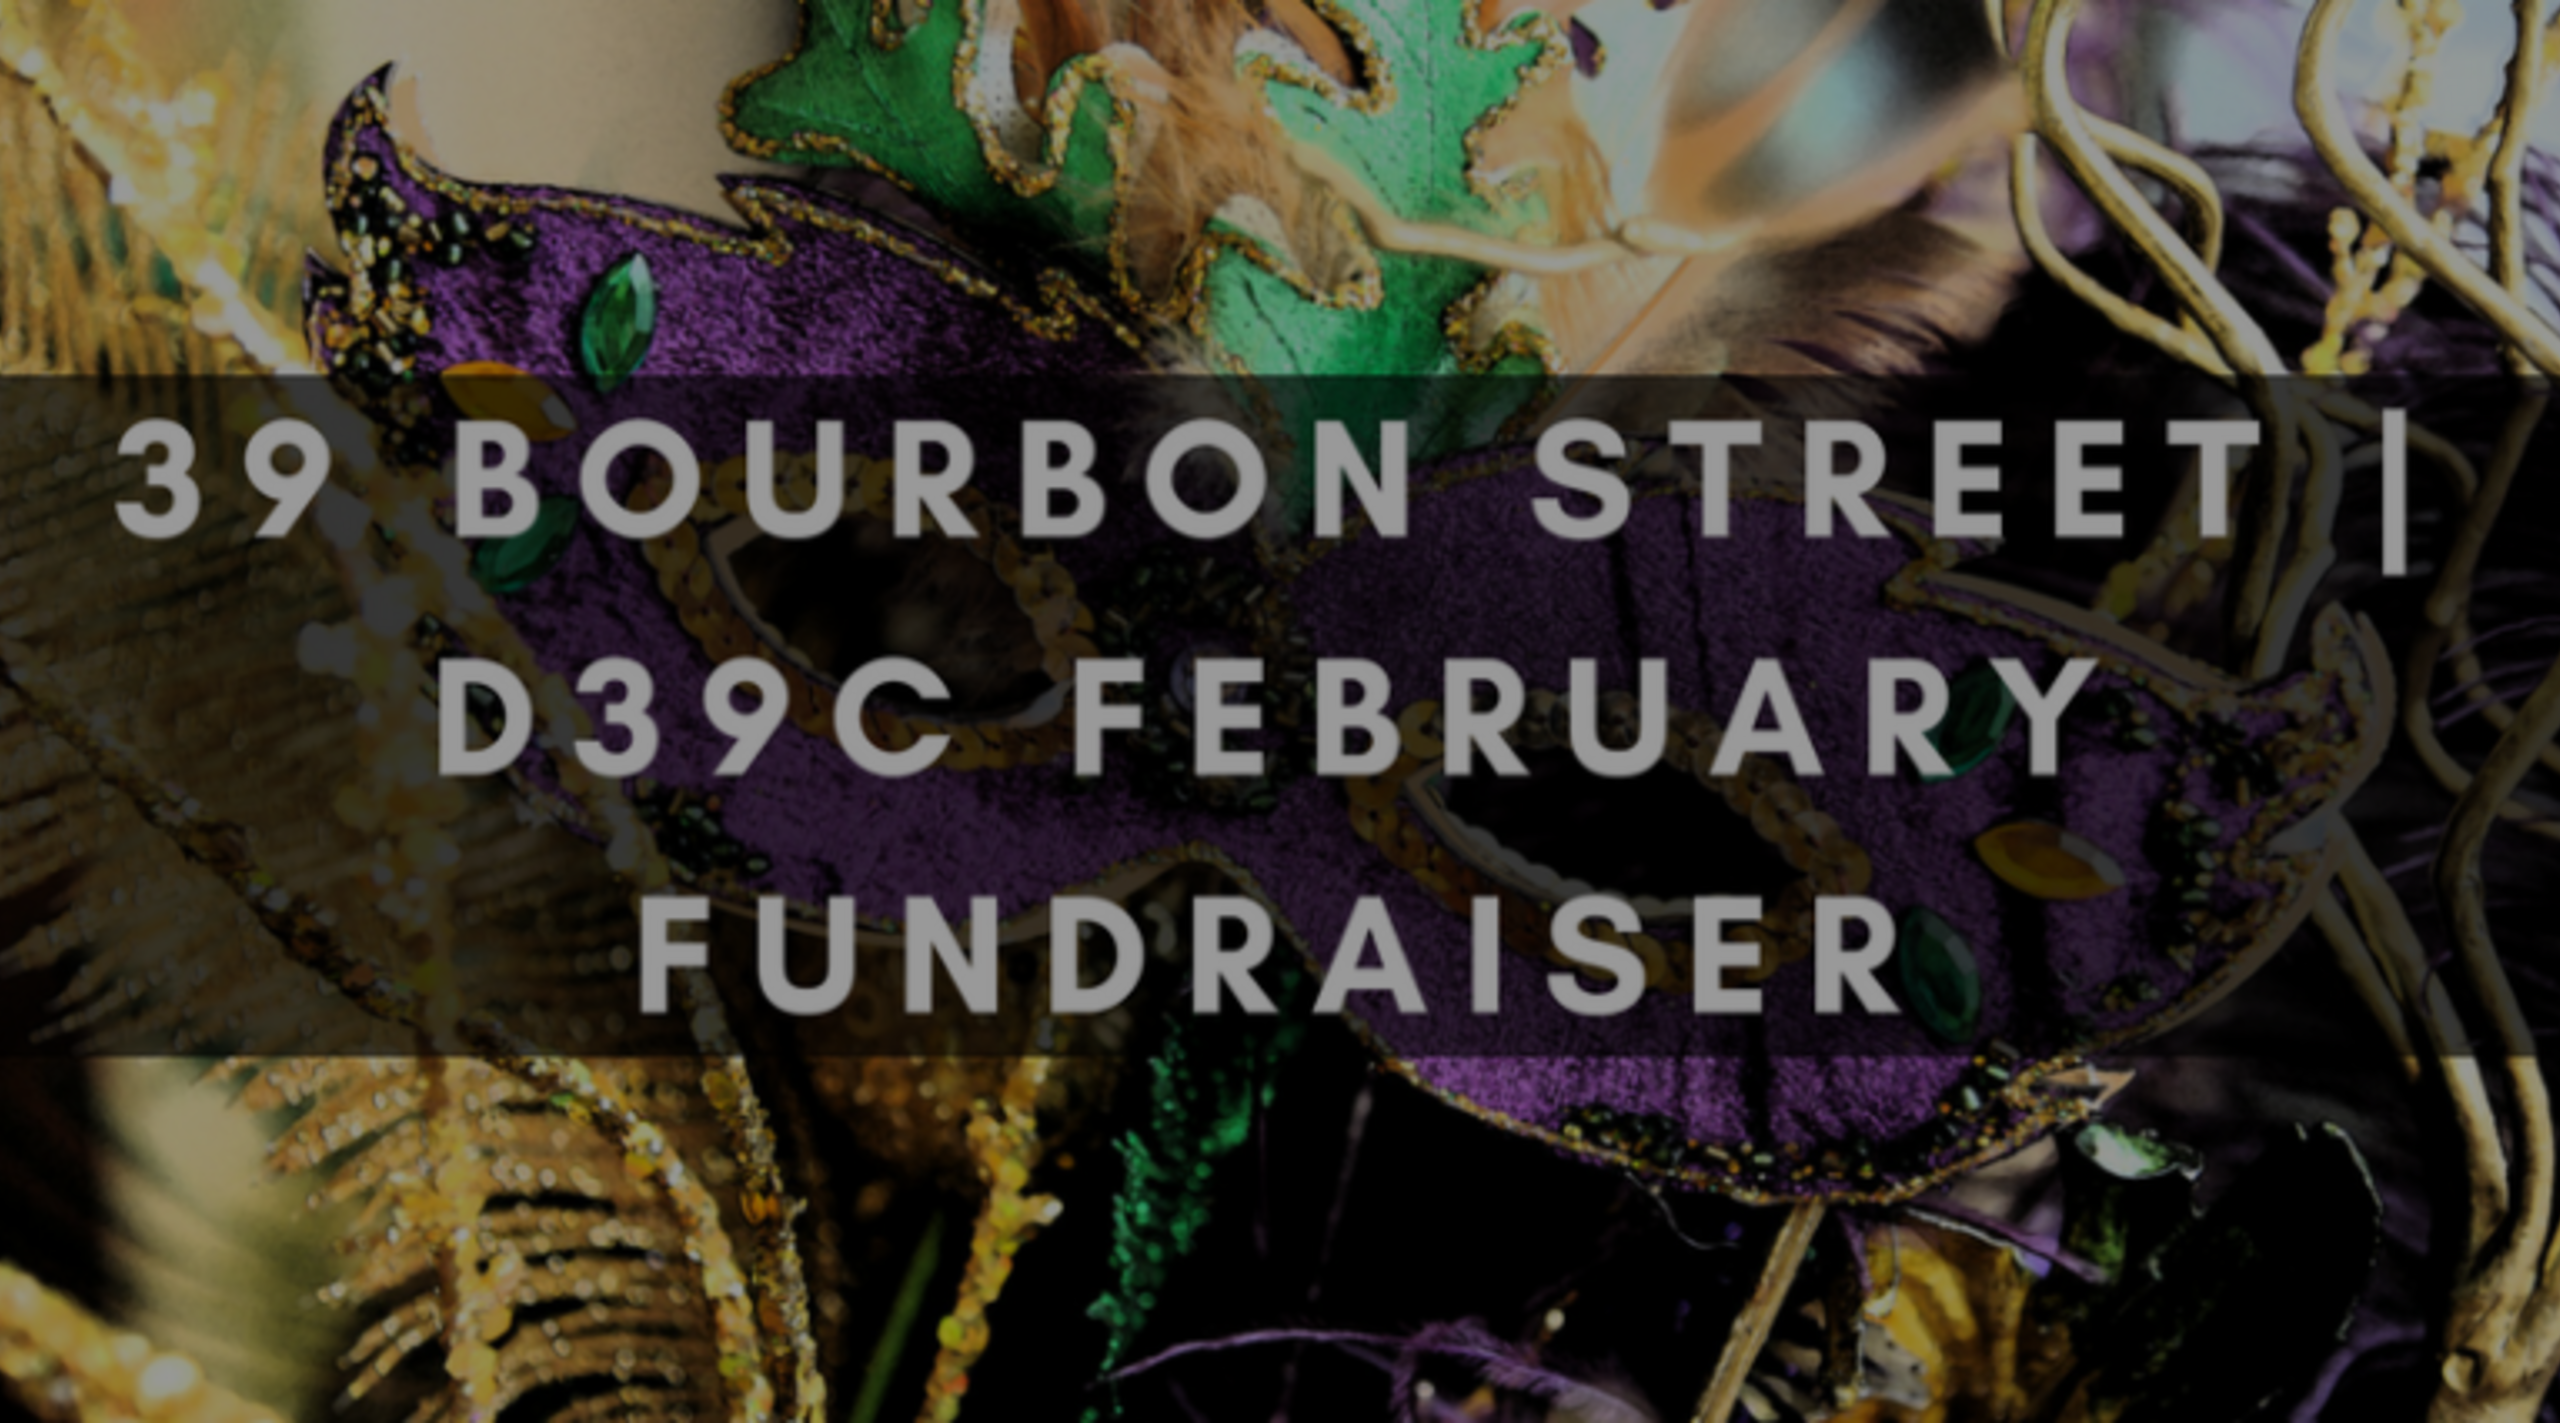 39 BOURBON STREET | D39C FEBRUARY FUNDRAISER